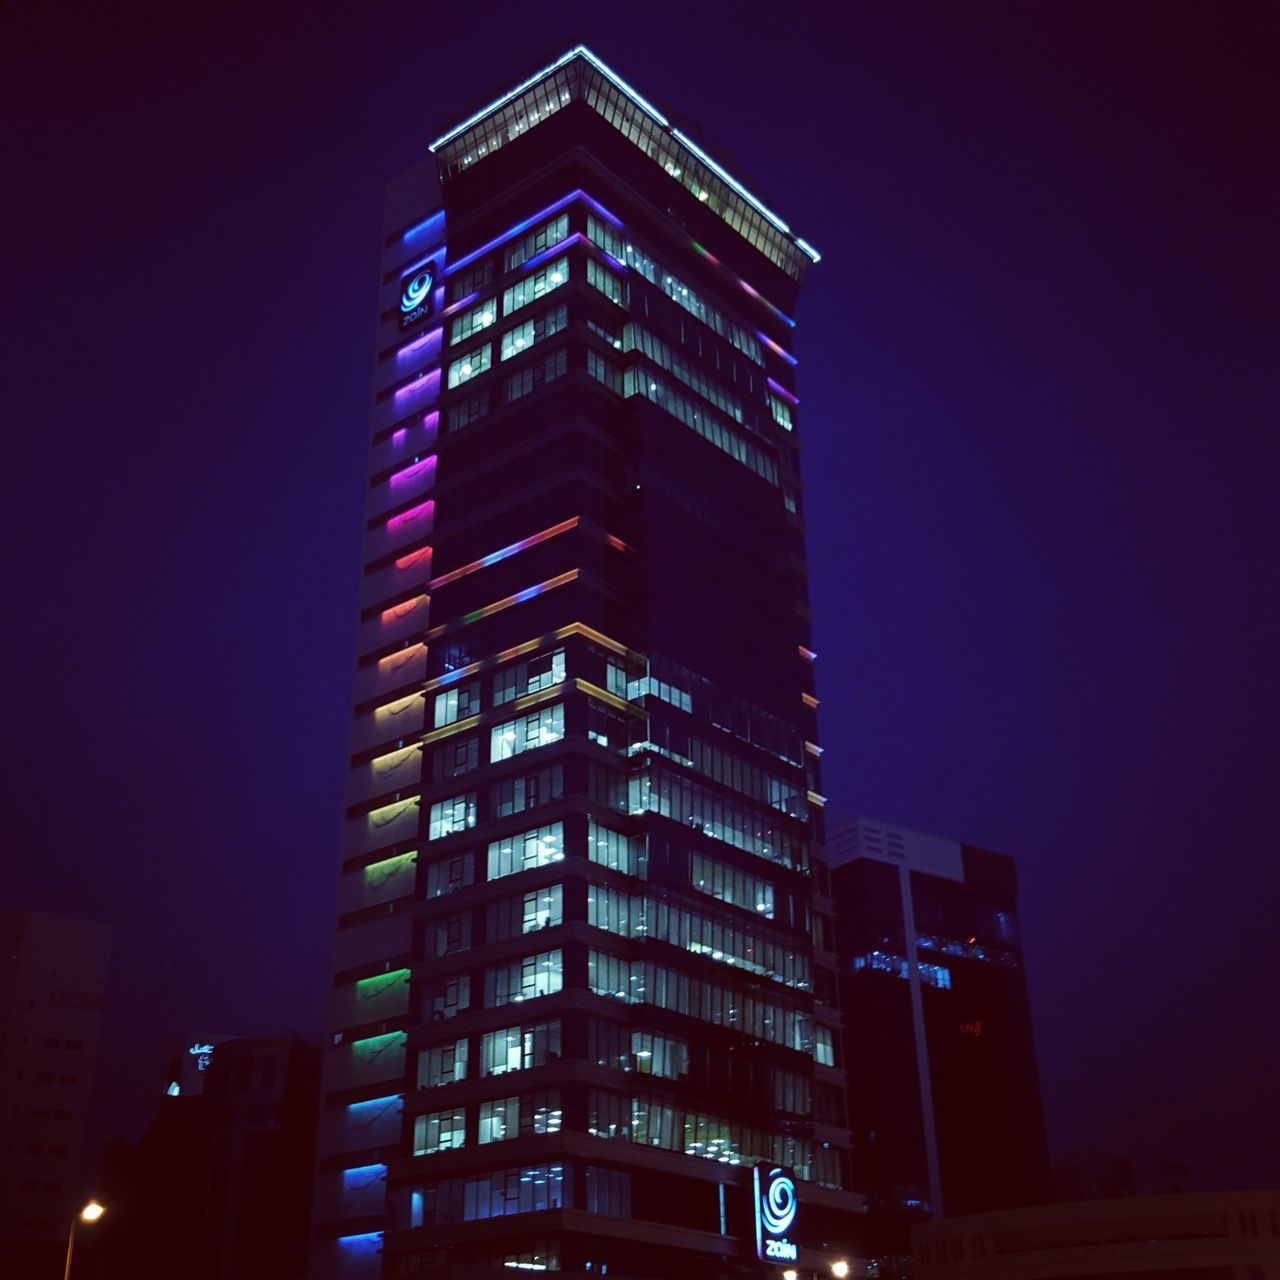 Skyscraper Finance And Economy Night Architecture Business Finance And Industry Modern City Built Structure Building Exterior Illuminated Low Angle View Cityscape Downtown District Urban Skyline Outdoors Neon Business Dubai Philippines Thailand Bahrain Bahrainlife DXB Travel Future